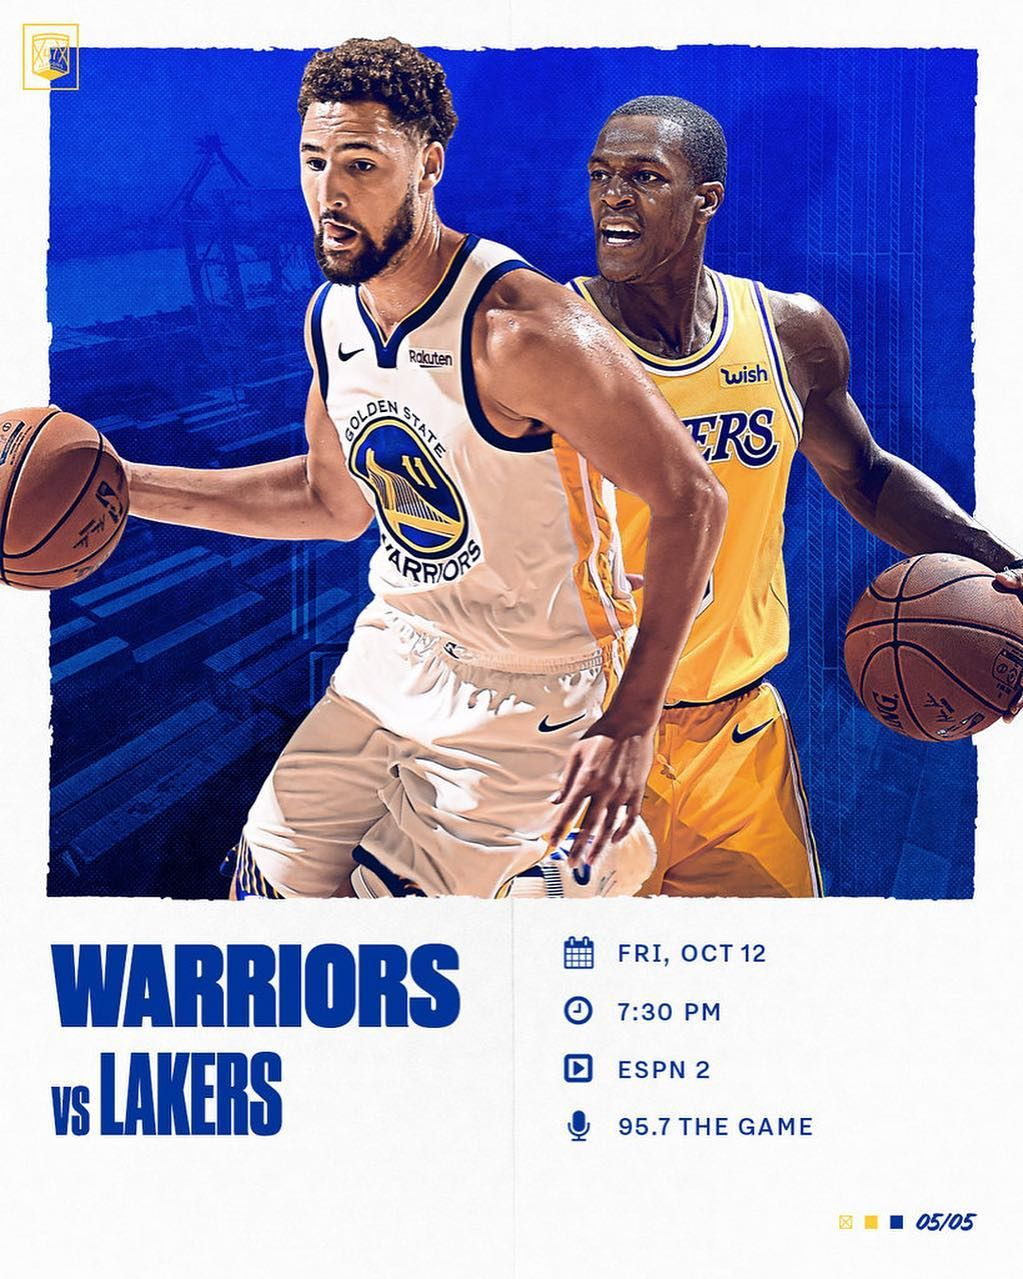 It S Game Day Dubs With Another One Against The Lakers Tonight To Wrap Up This Preseason Splash Brothers Warrior Lakers